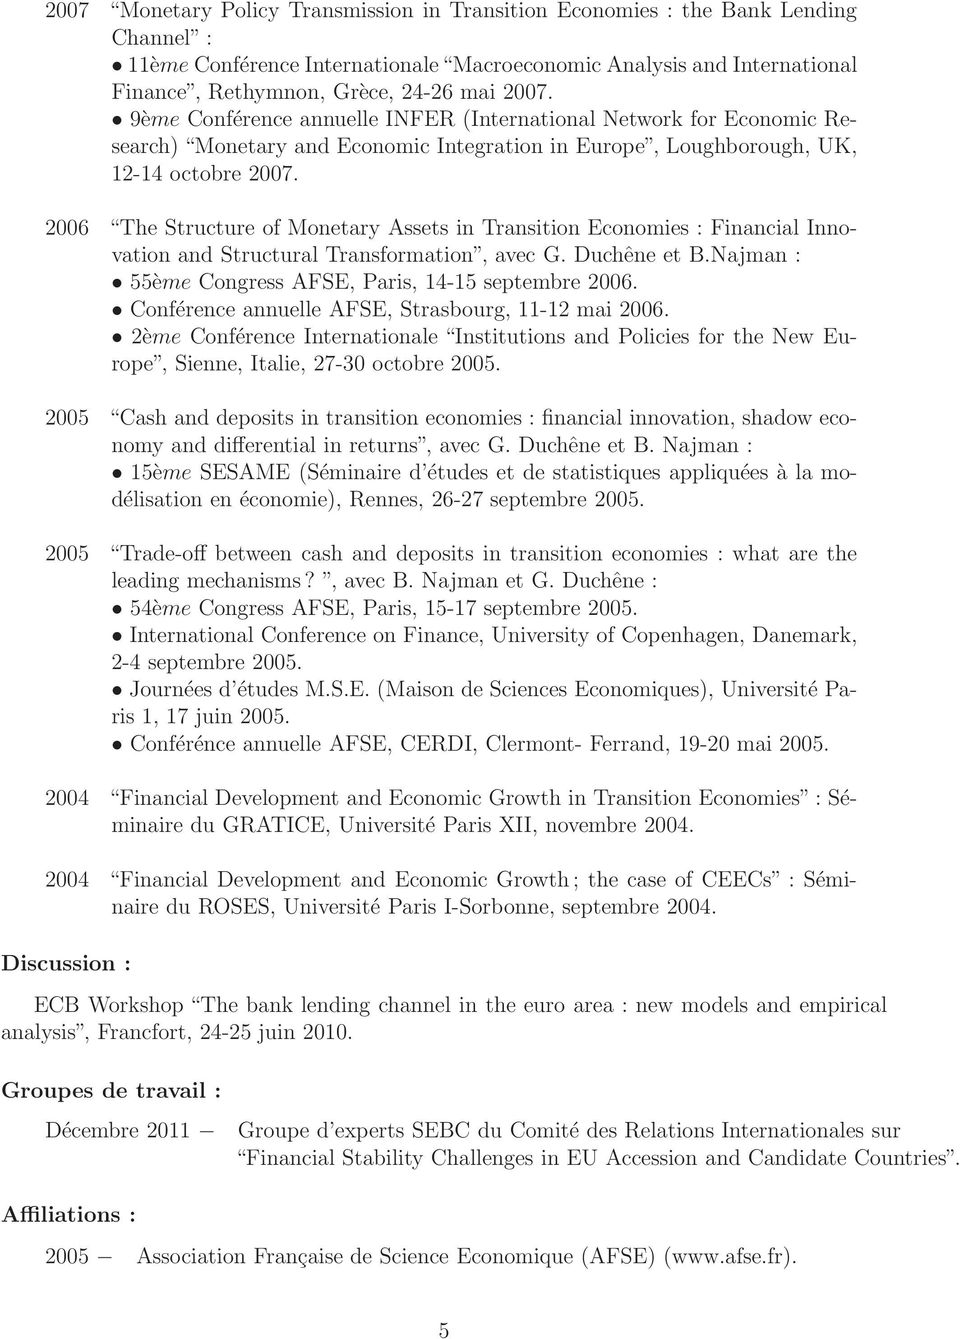 2006 The Structure of Monetary Assets in Transition Economies : Financial Innovation and Structural Transformation, avec G. Duchêne et B.Najman : 55ème Congress AFSE, Paris, 14-15 septembre 2006.